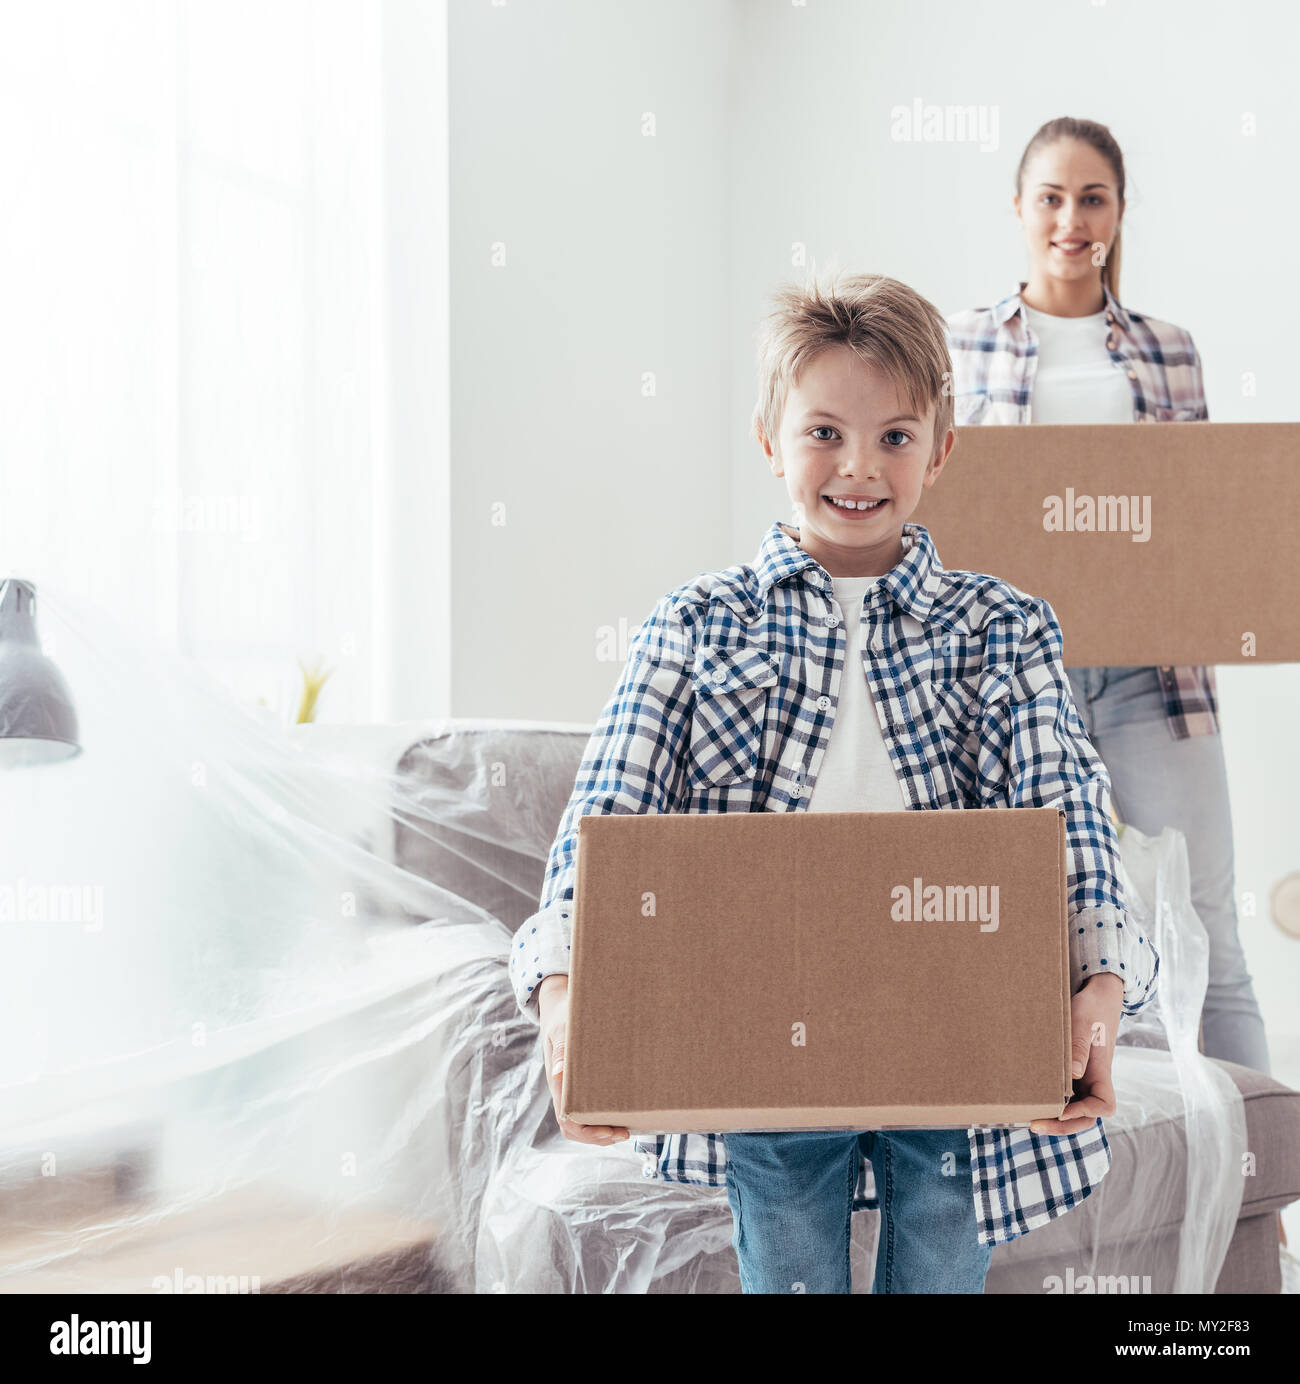 Young family relocating and renovating their new house, they are carrying boxes, boy smiling on the foreground - Stock Image